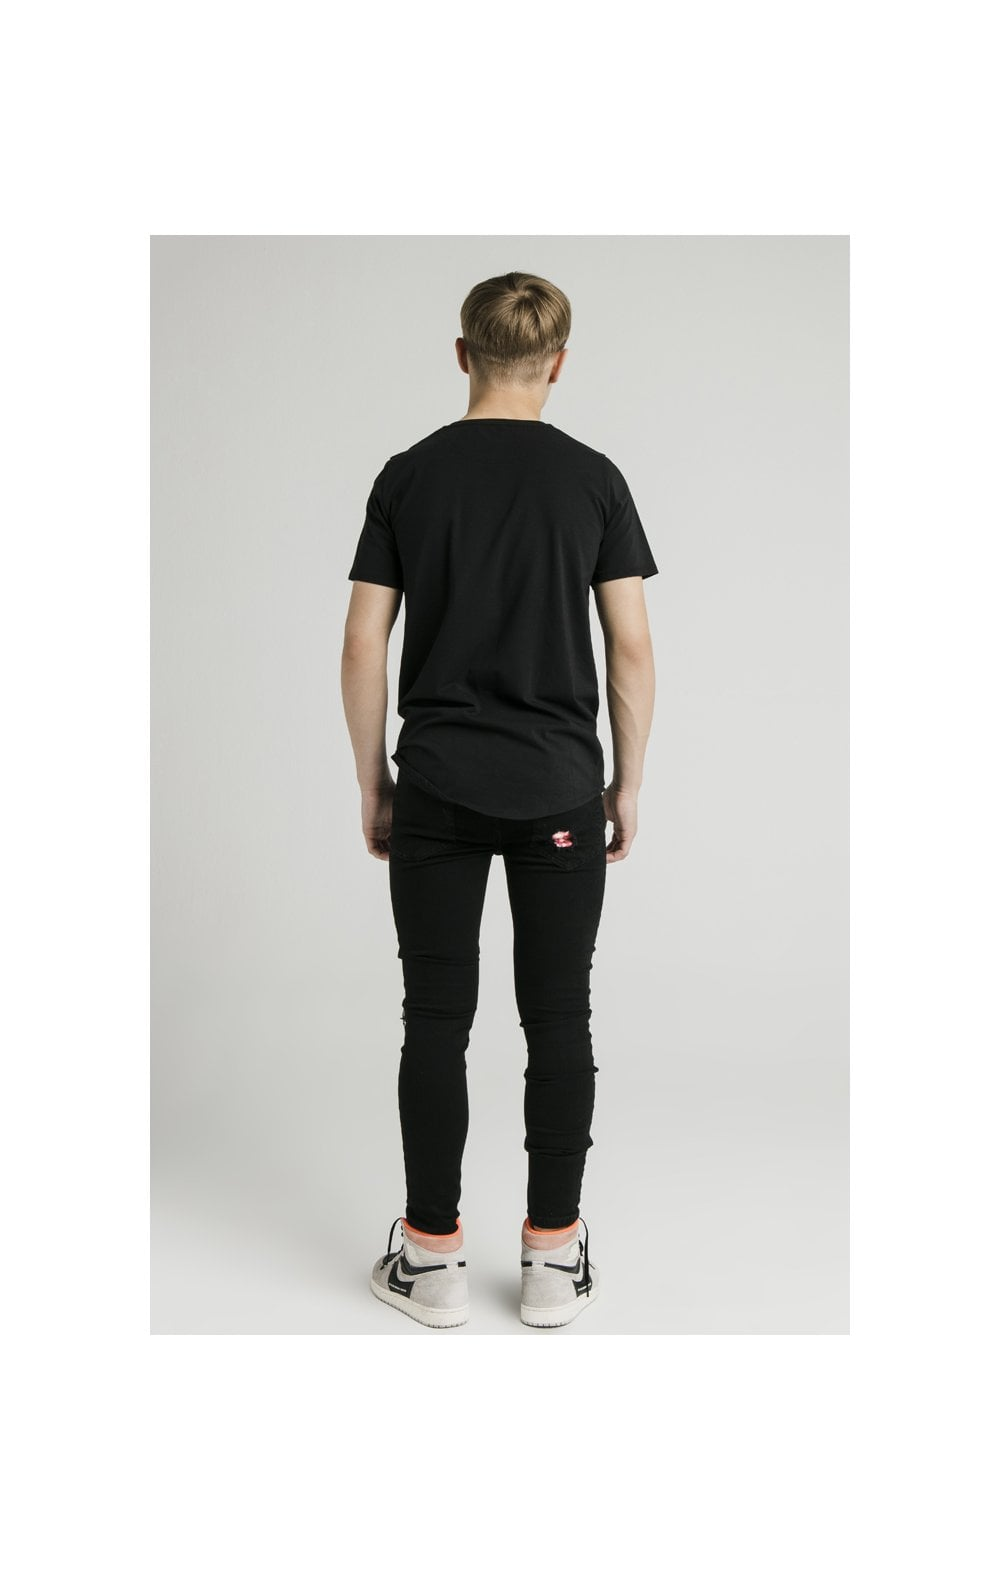 Load image into Gallery viewer, Illusive London S/S Core Tee - Black (6)